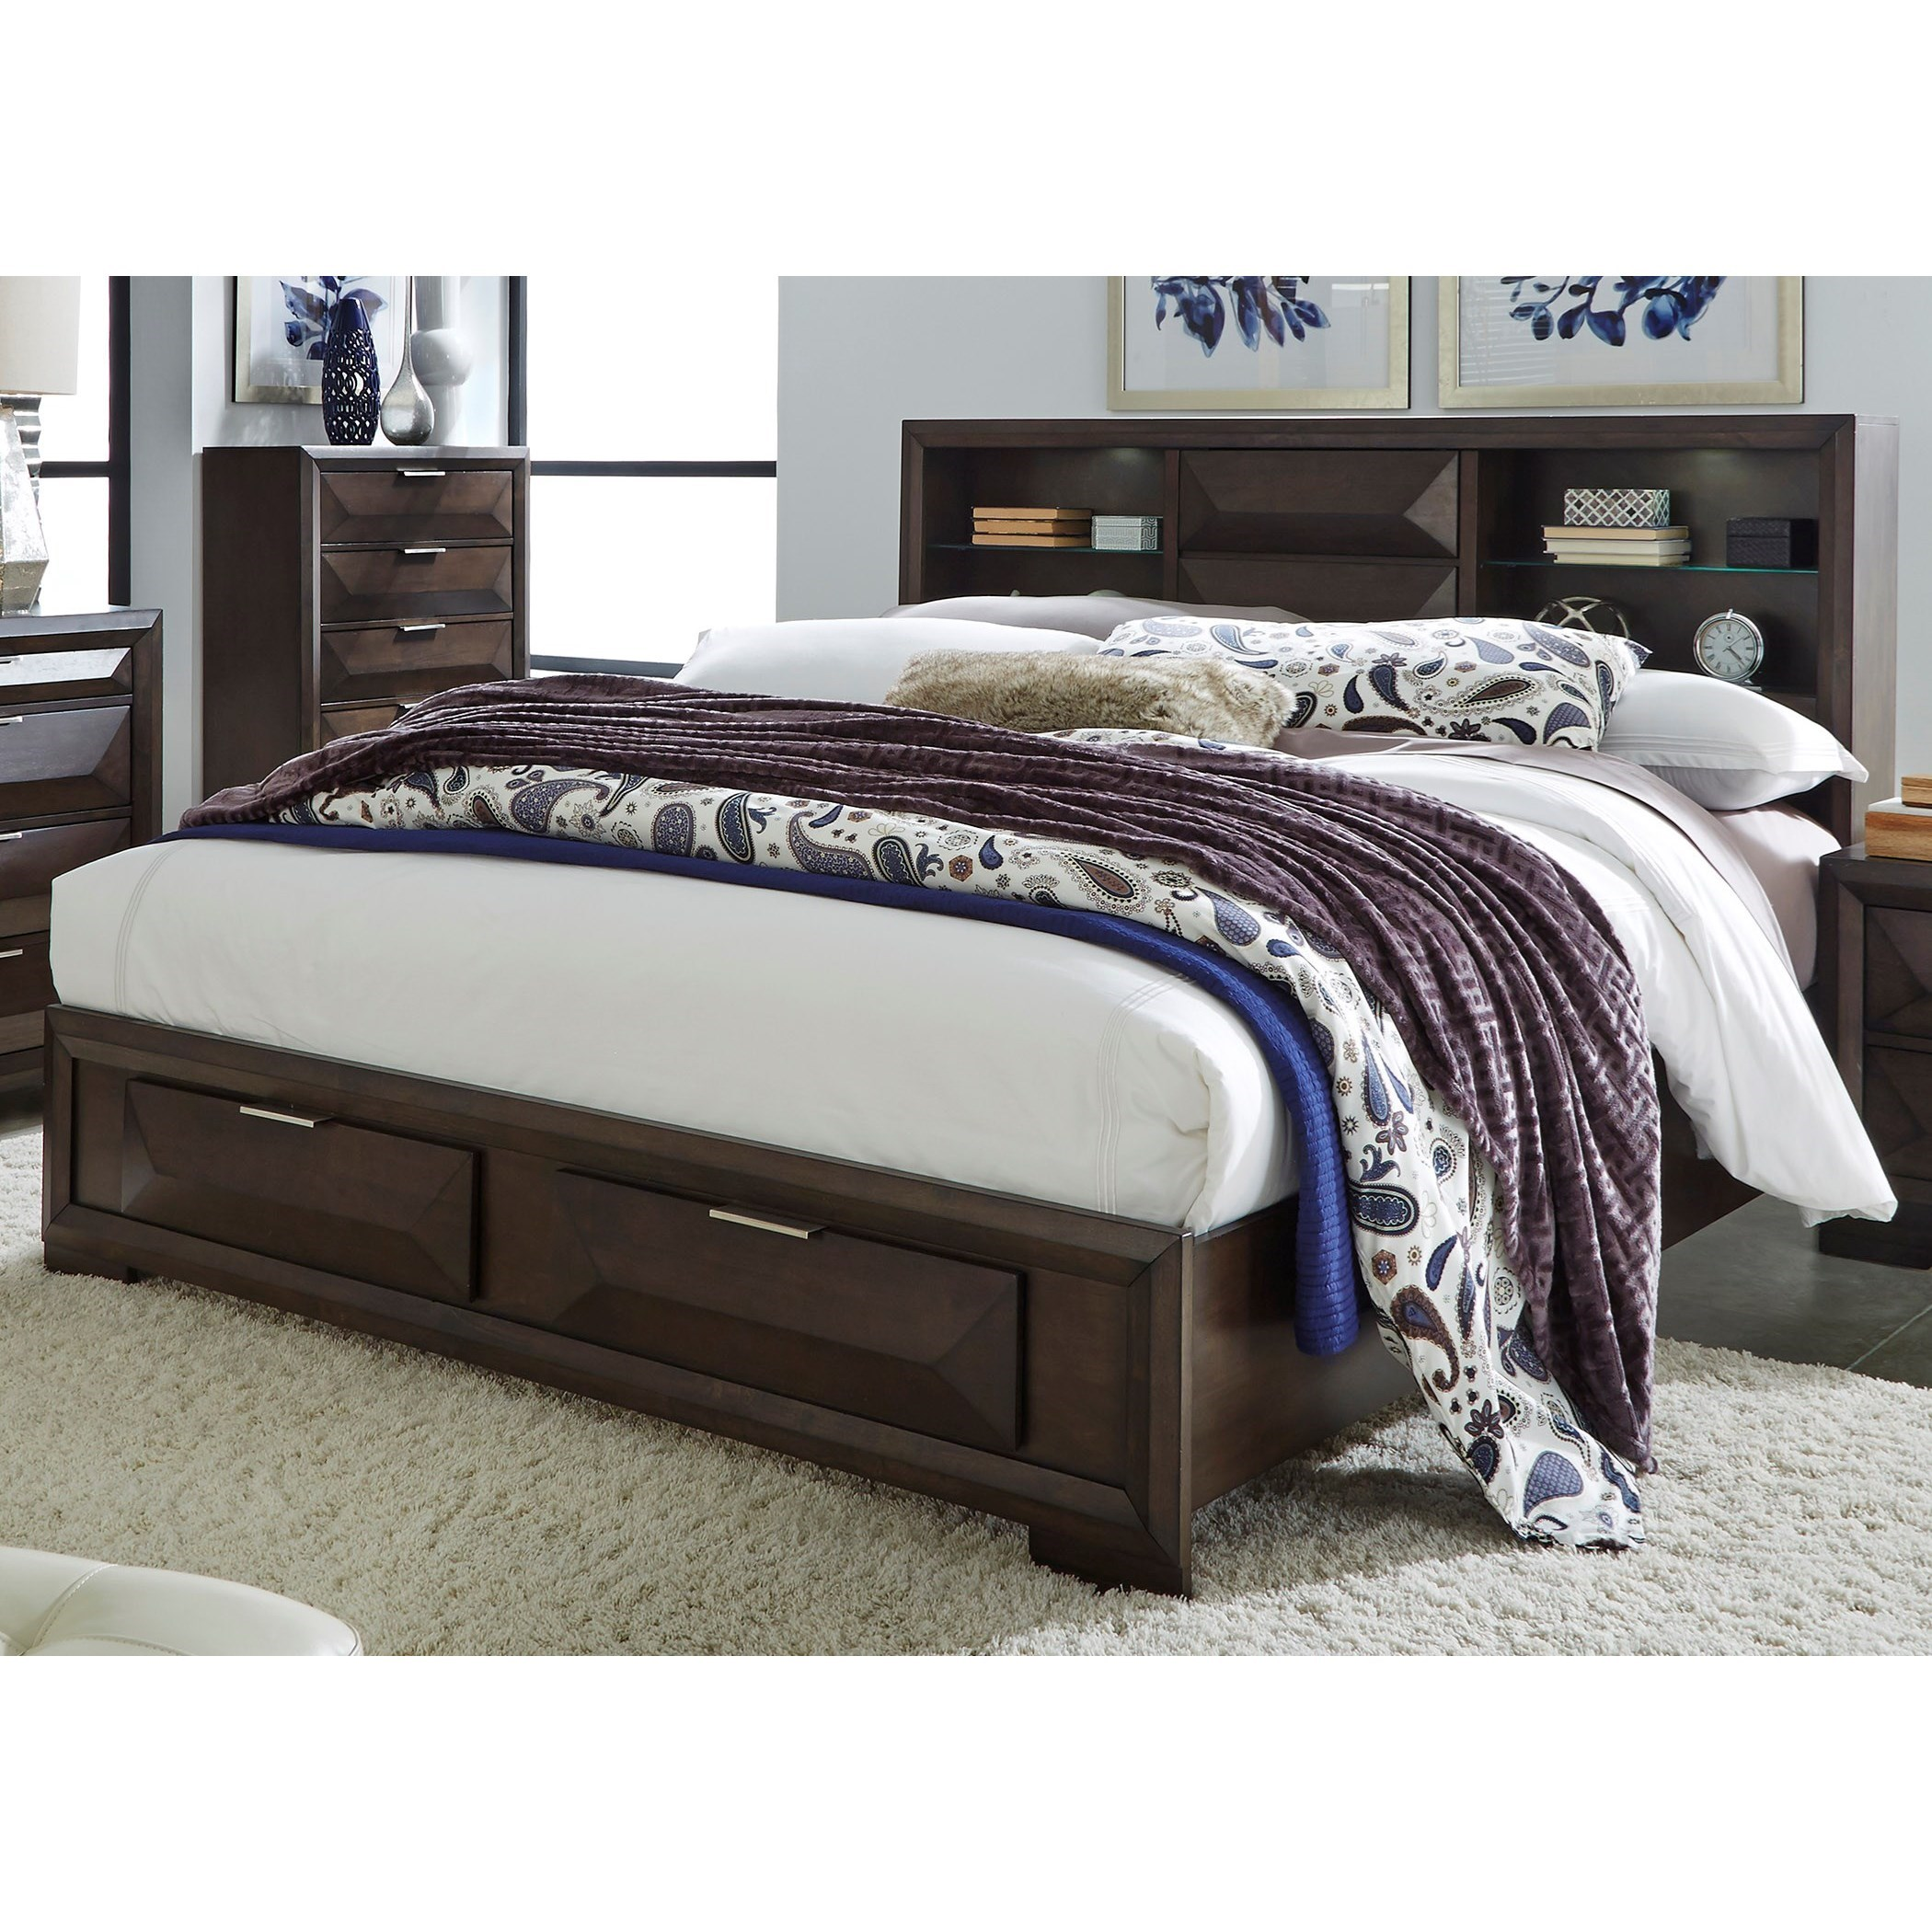 Liberty furniture newland contemporary king bookcase bed - Contemporary king bedroom furniture ...